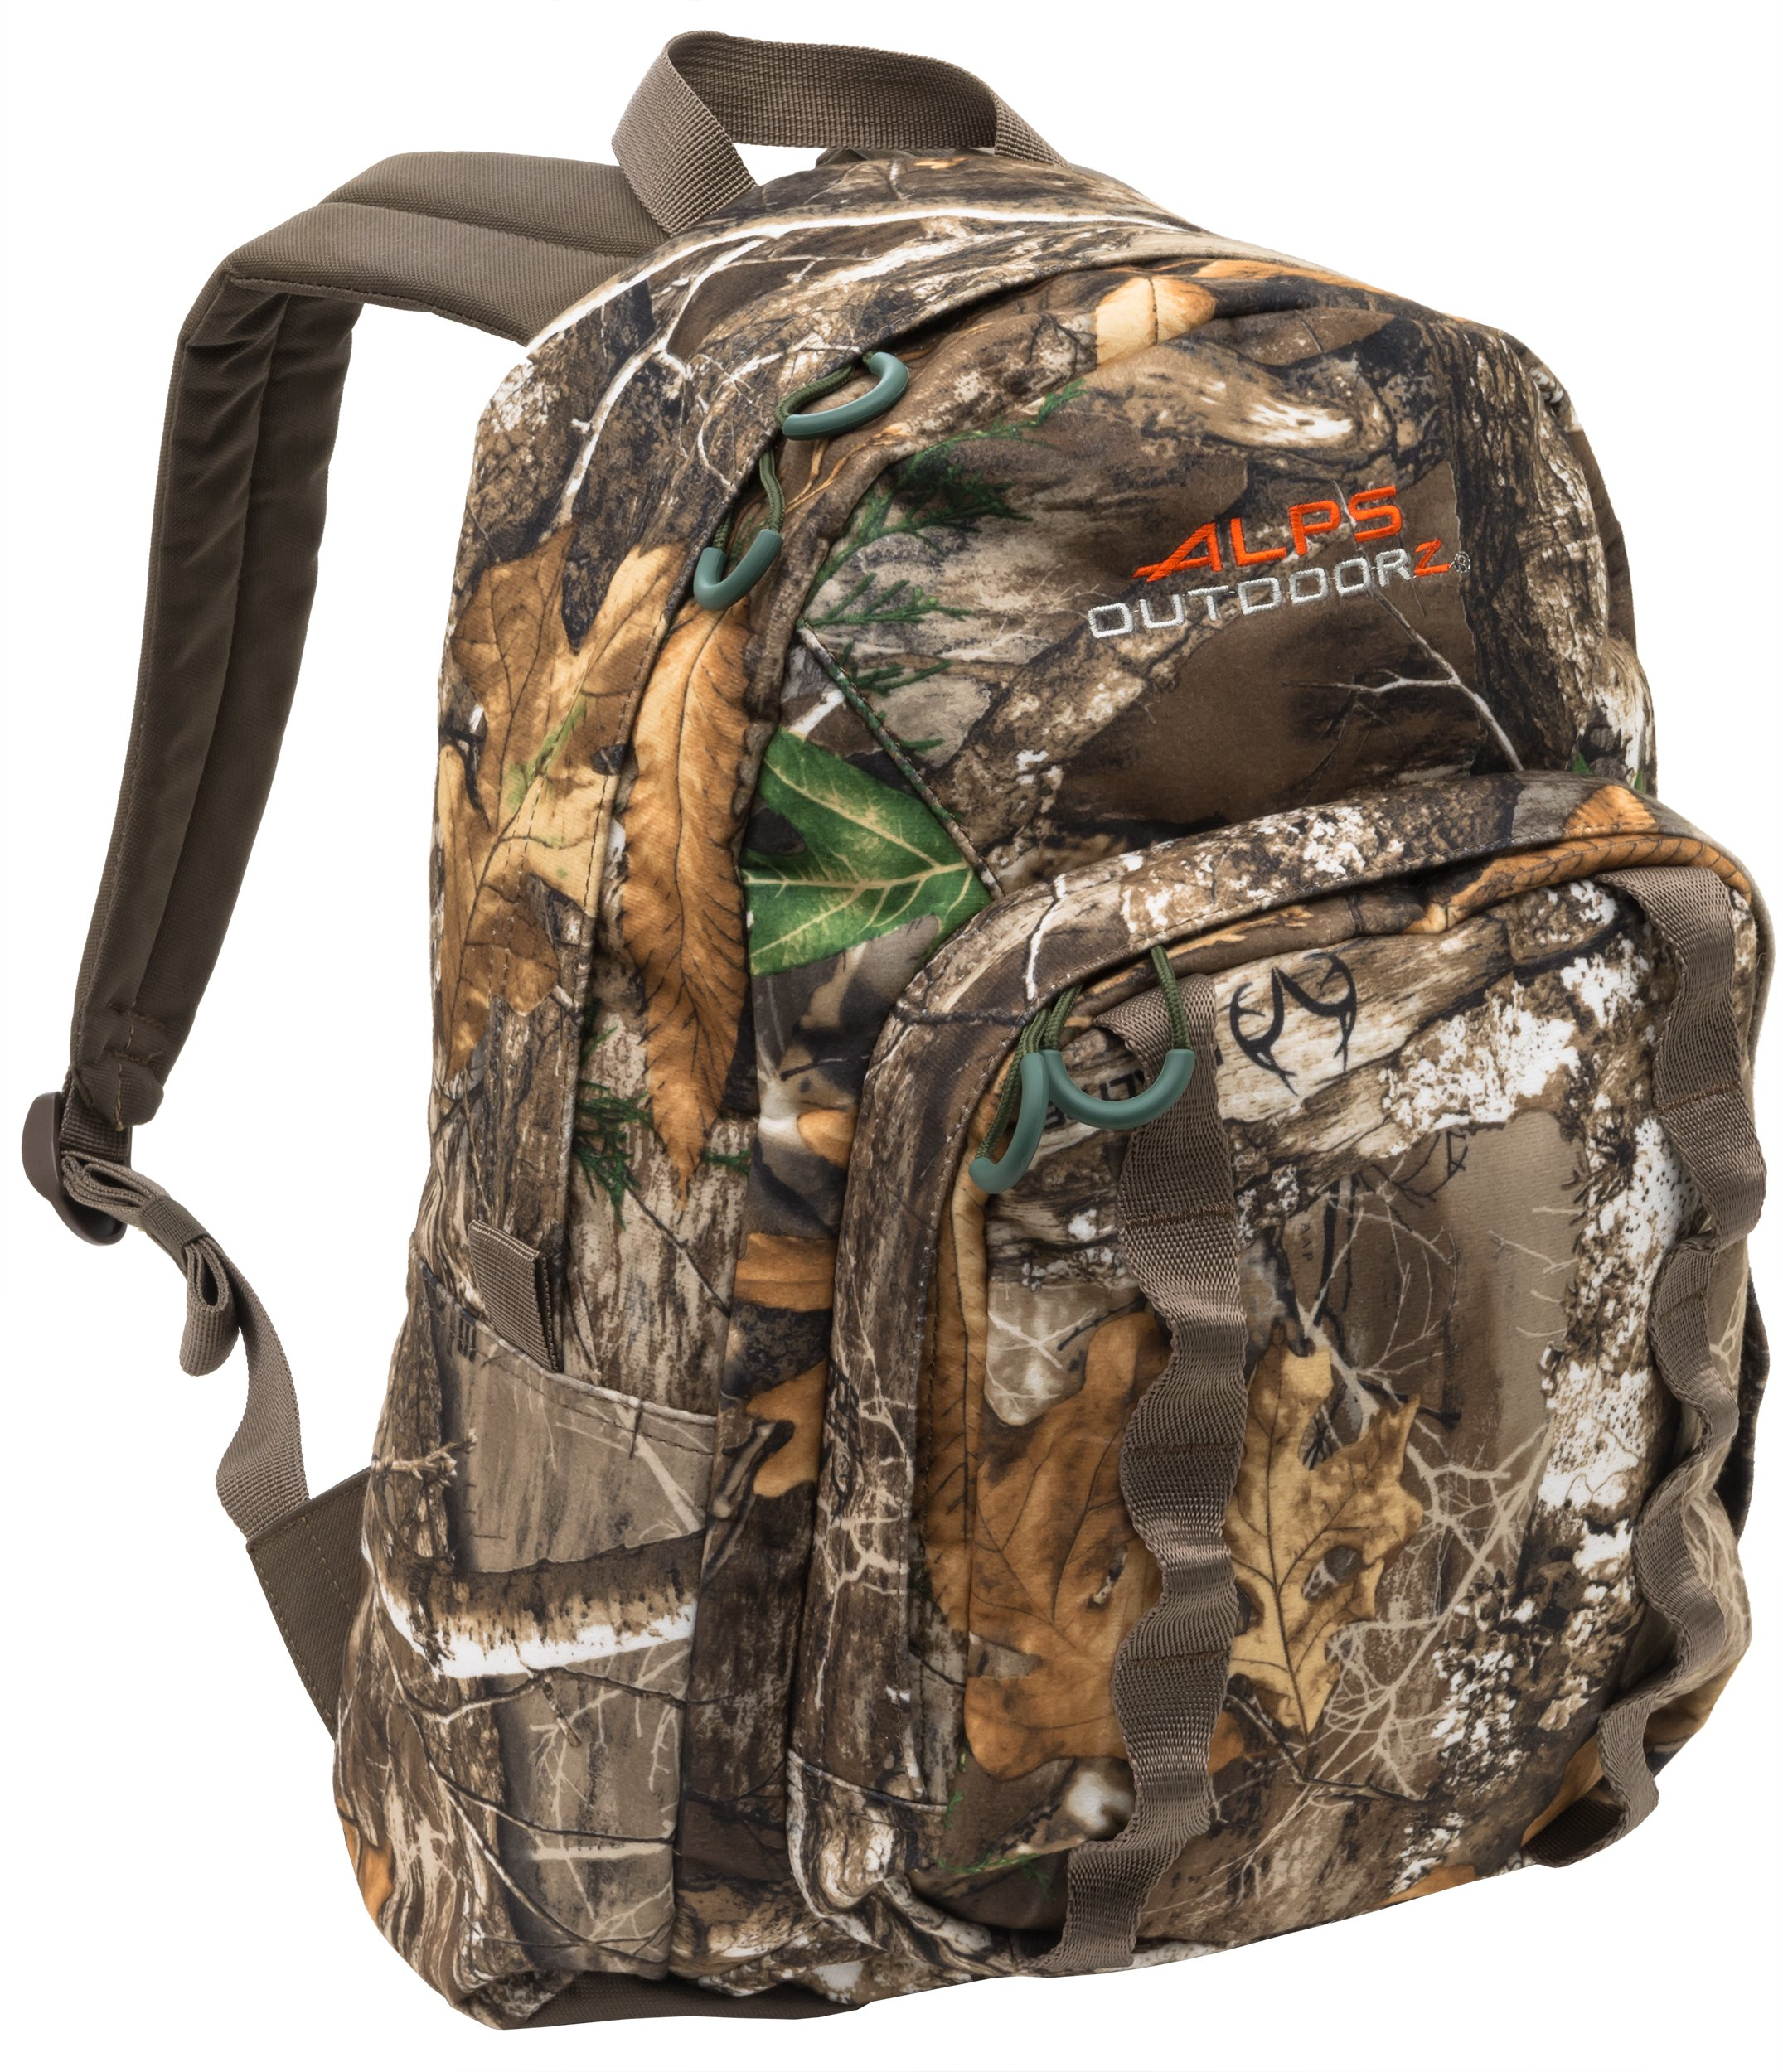 ALPS OutdoorZ Ranger, Realtree Edge by ALPS OutdoorZ